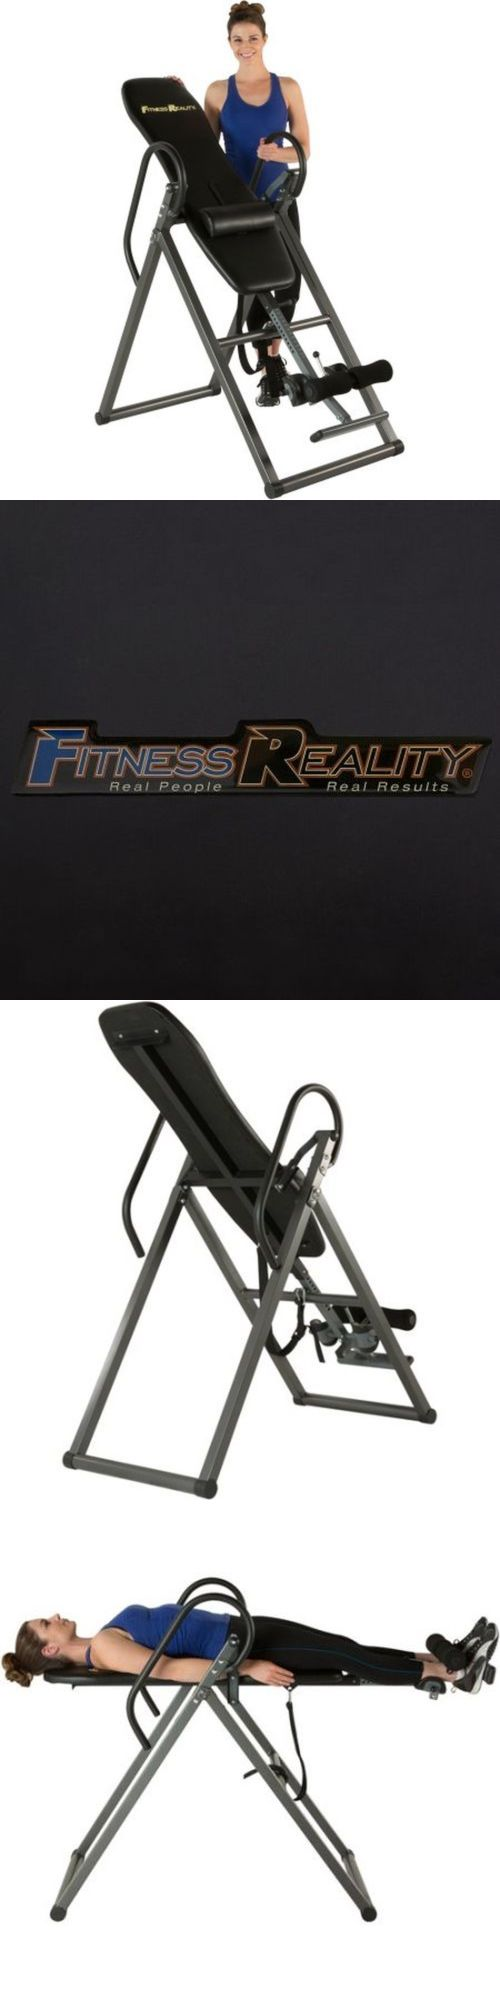 Inversion Tables 112954: Anti Gravity Inversion Table Back Therapy Exercise Fitness Pain Relief New -> BUY IT NOW ONLY: $115.97 on eBay!